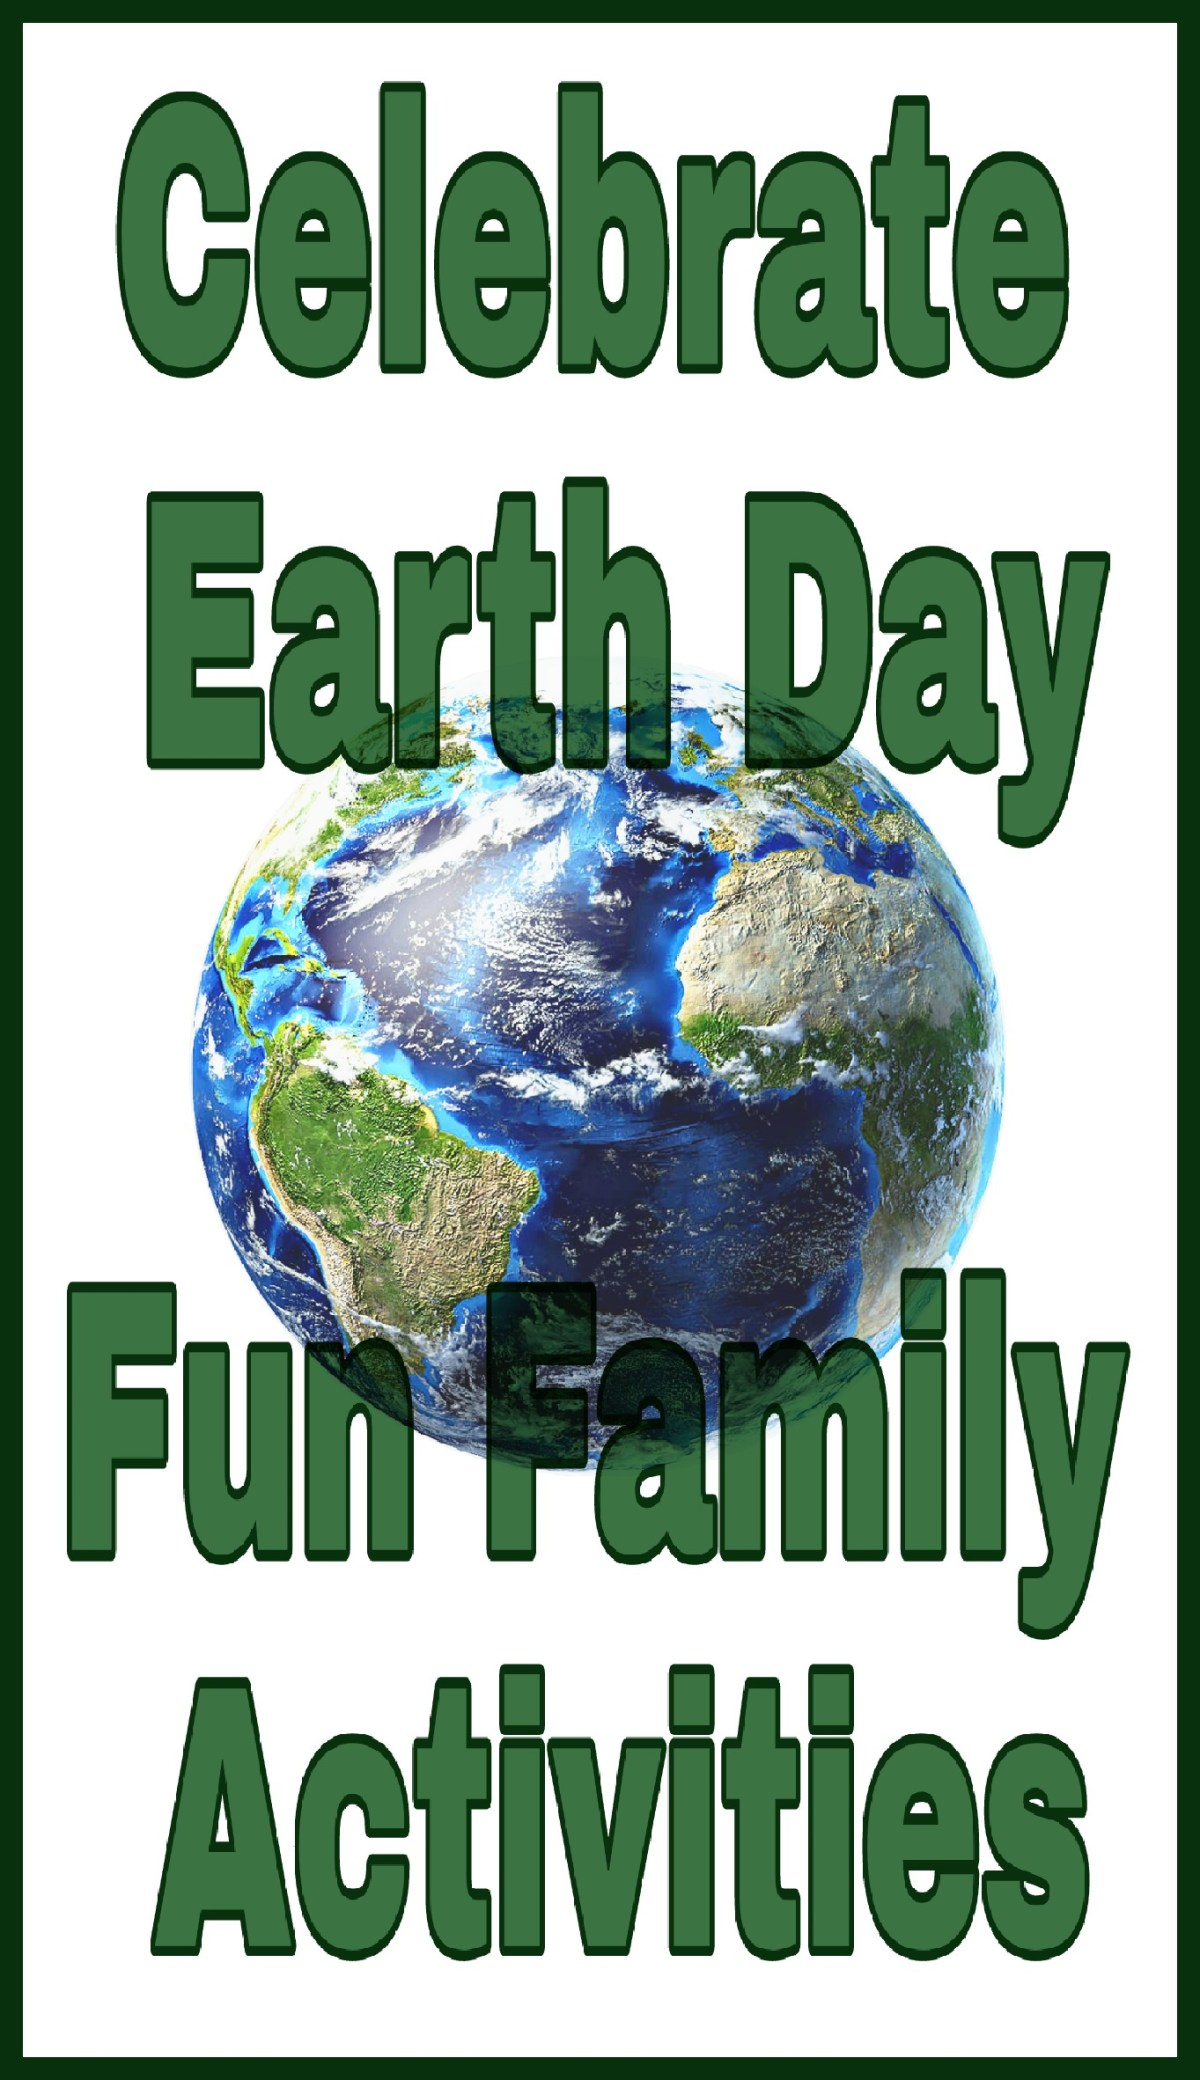 Fun Family Activities To Celebrate Earth Day!